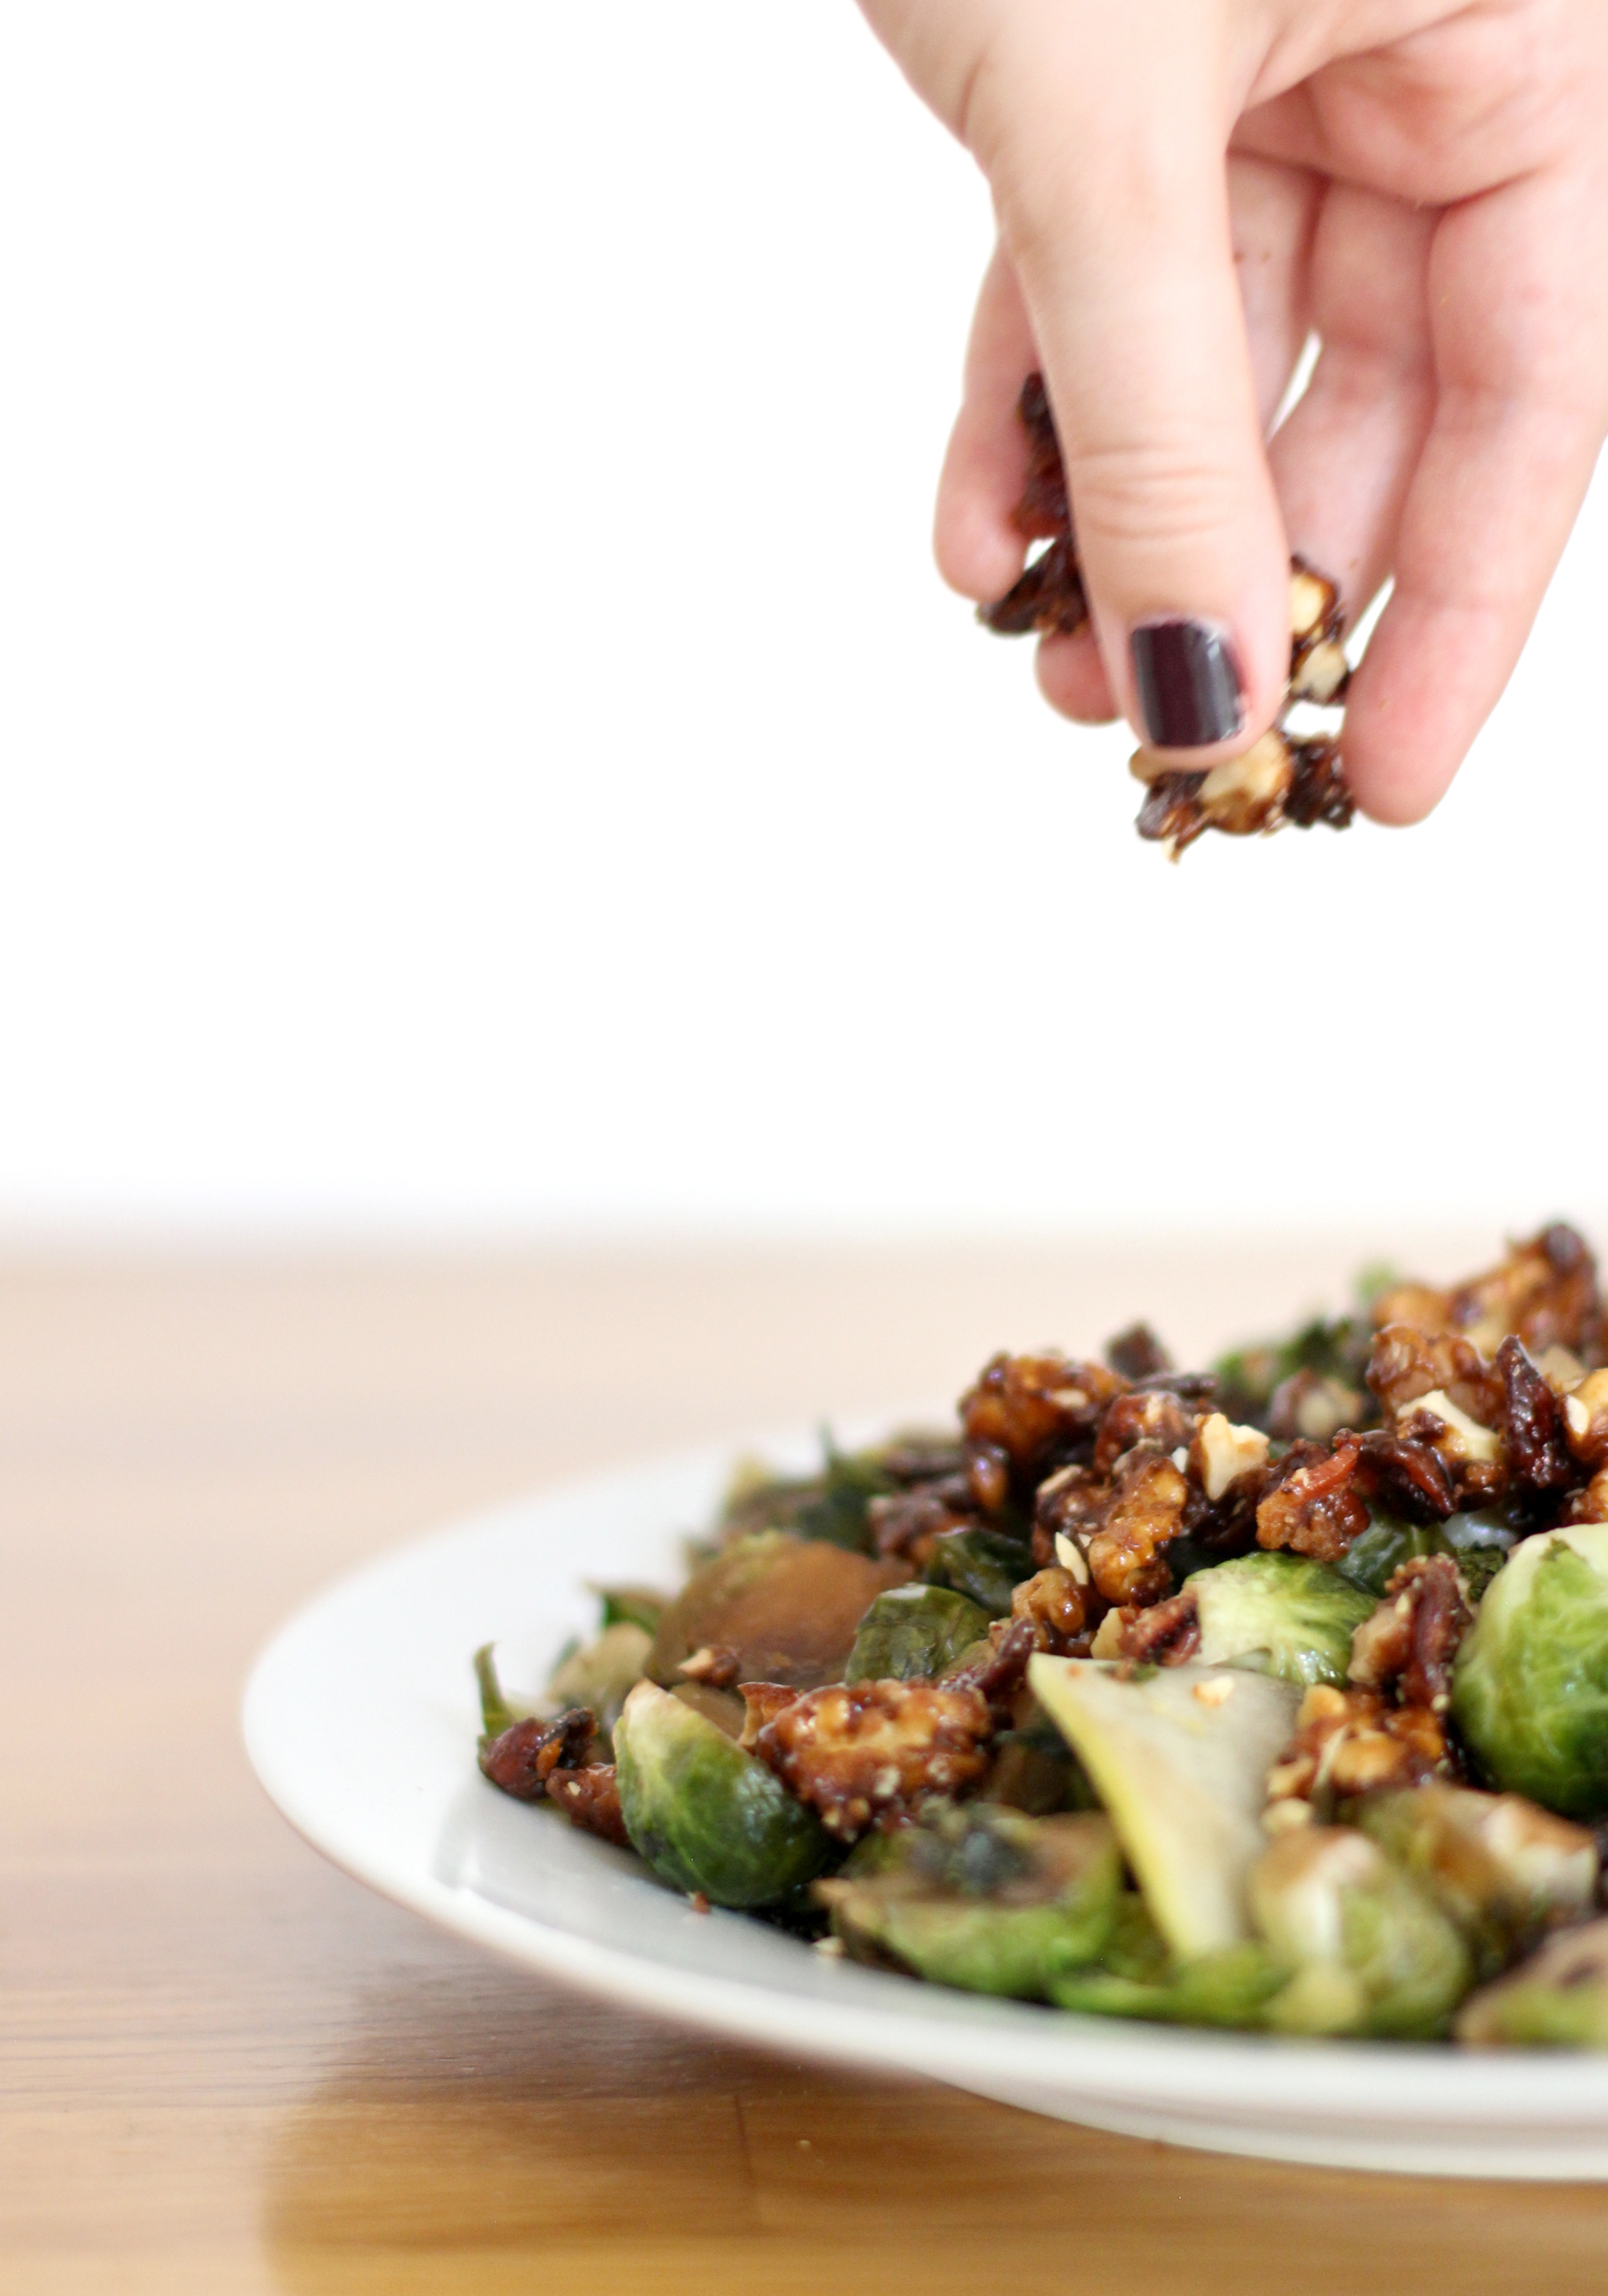 How to Make Brussels Sprouts with Candied Bacon and Walnuts (plus green apples, onions, mushrooms, and kale all tossed in a balsamic glaze!)